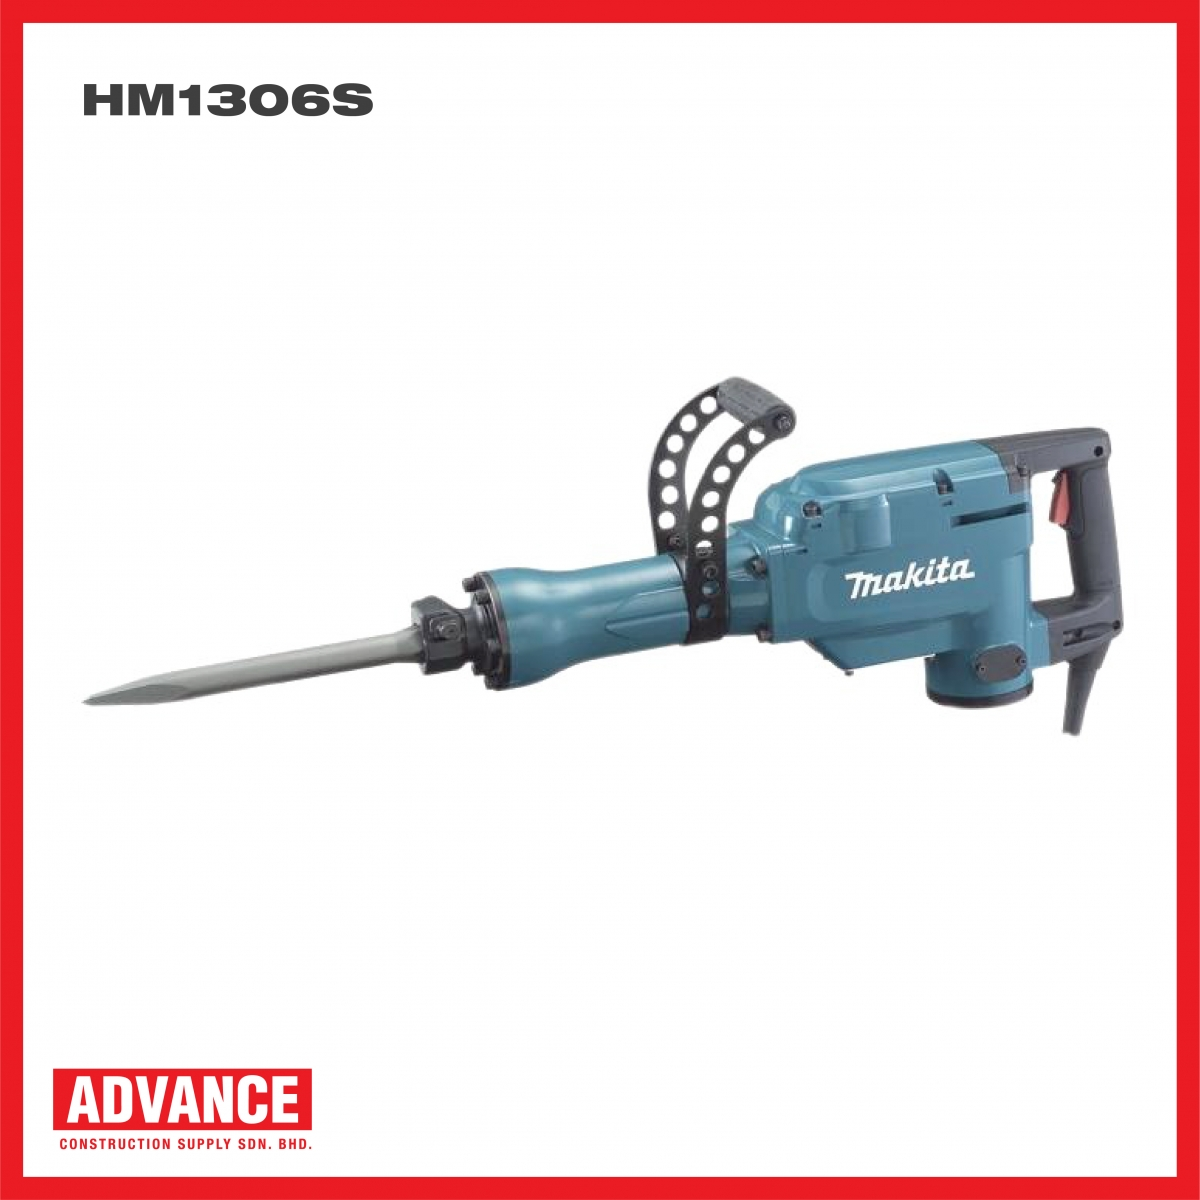 Hilti products 1024px